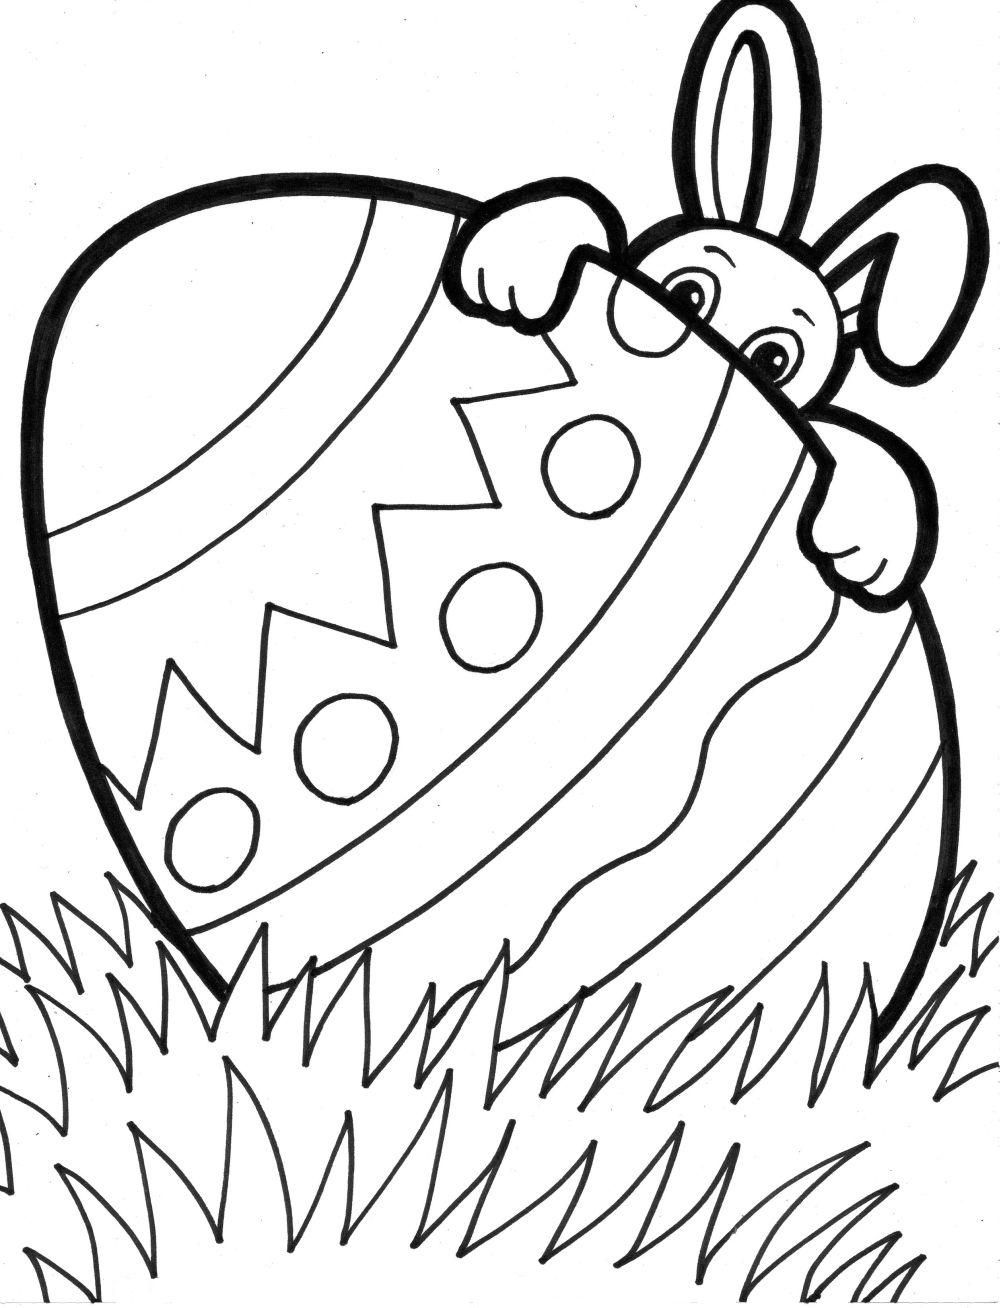 Free easter coloring pages for toddlers - 16 super cute and free easter printable coloring pages for kids